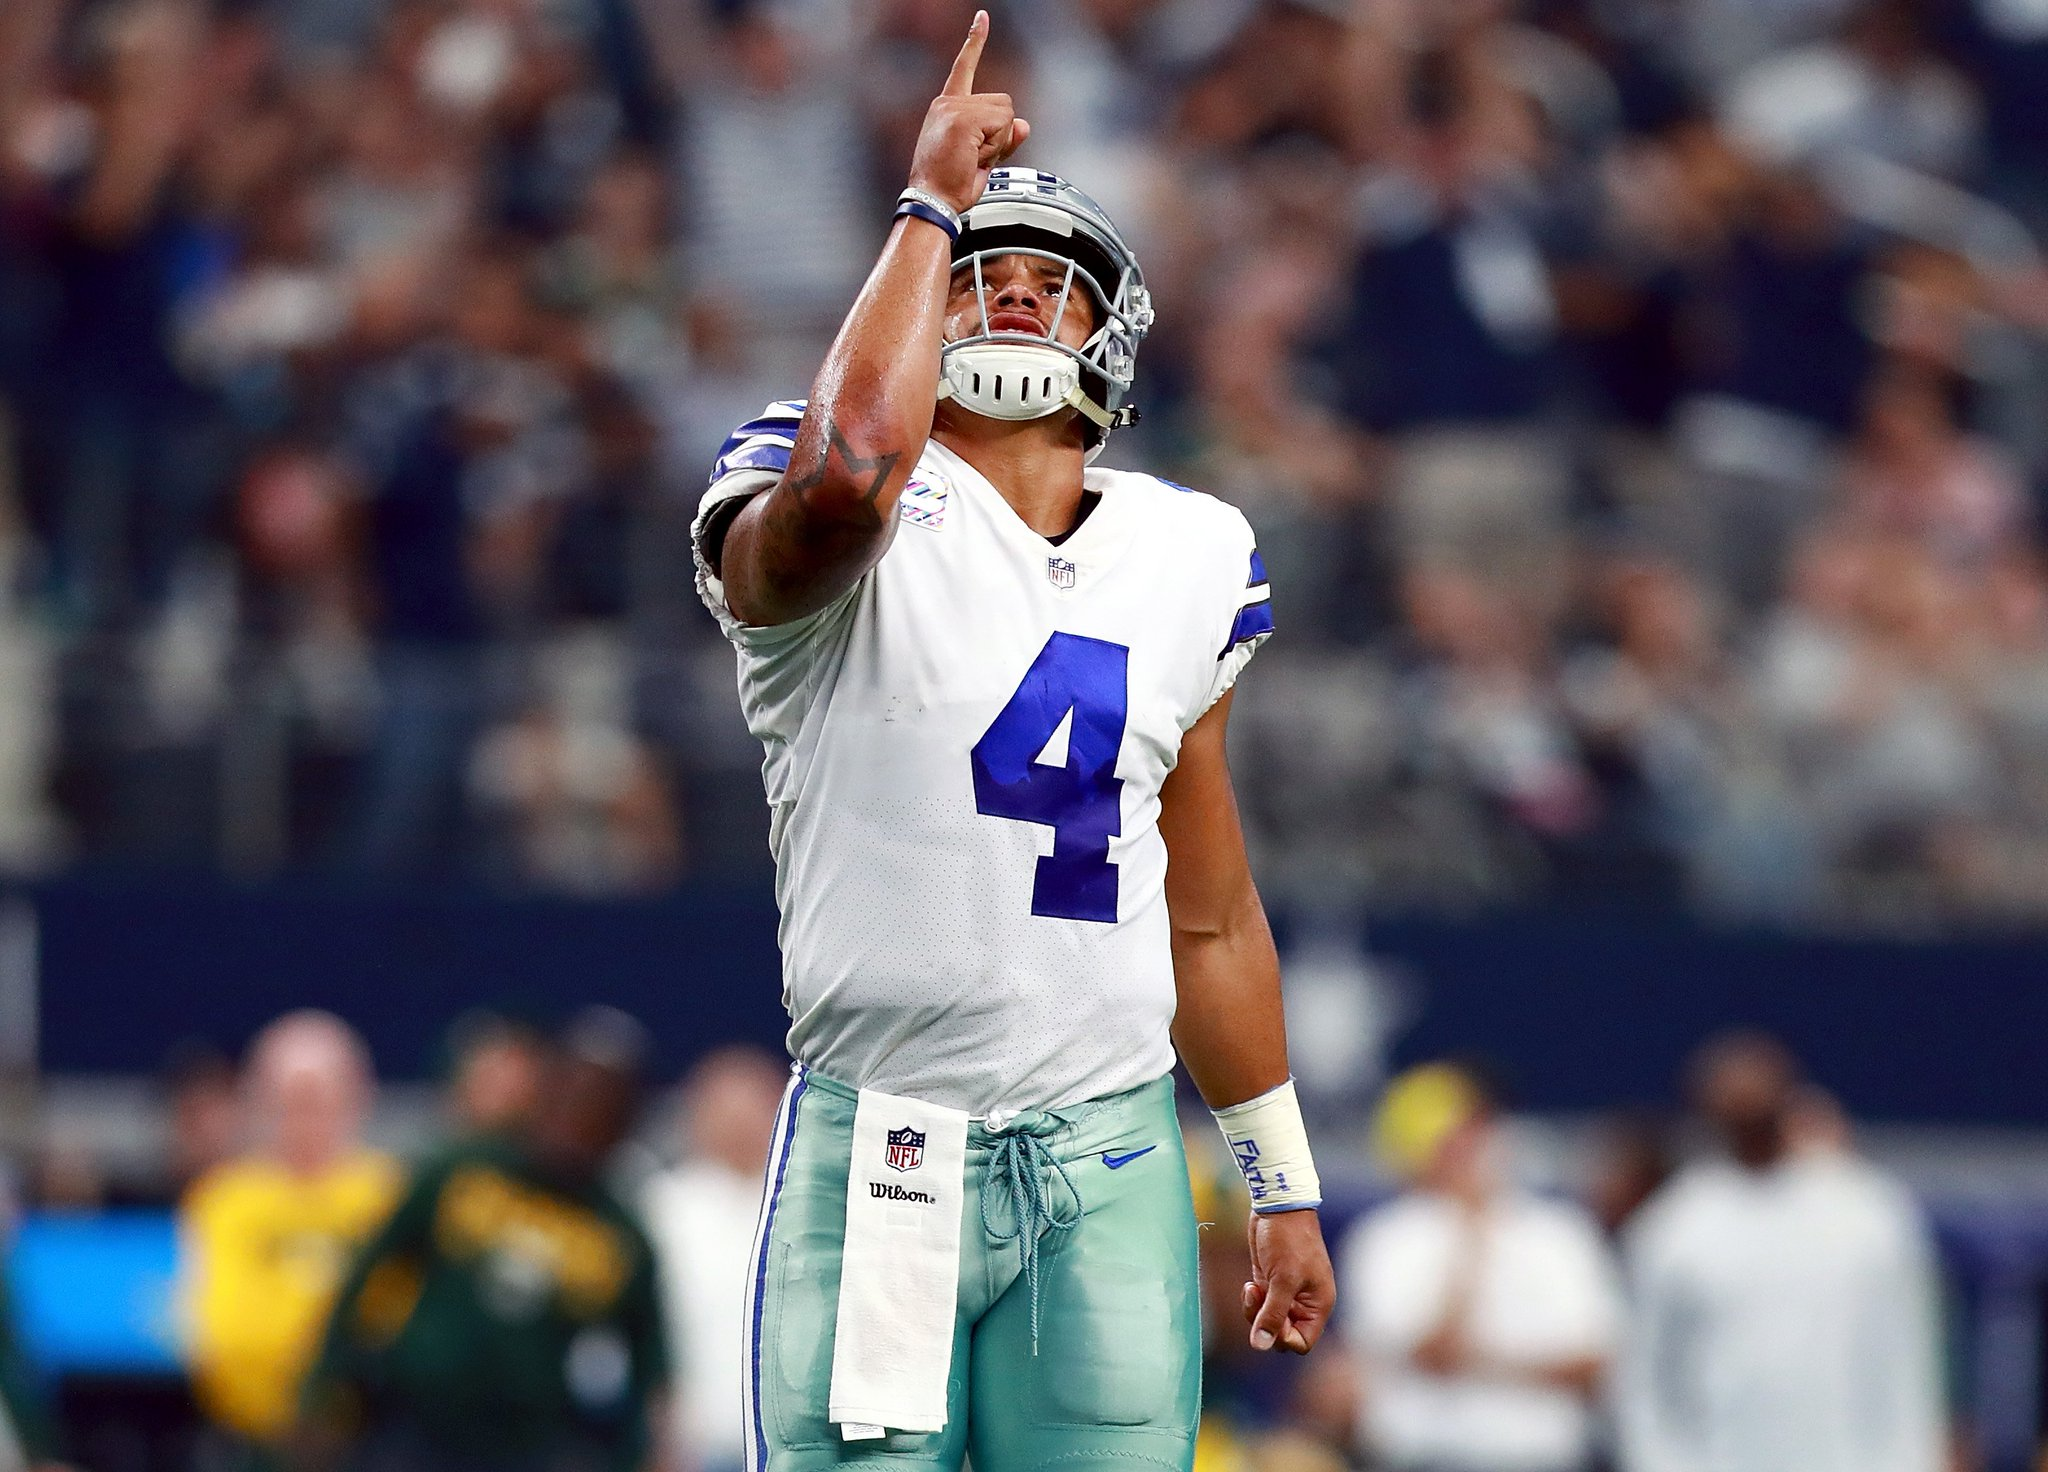 Dak is ballin'   18/23 187 yards 3 TD https://t.co/9ptqKSLsix